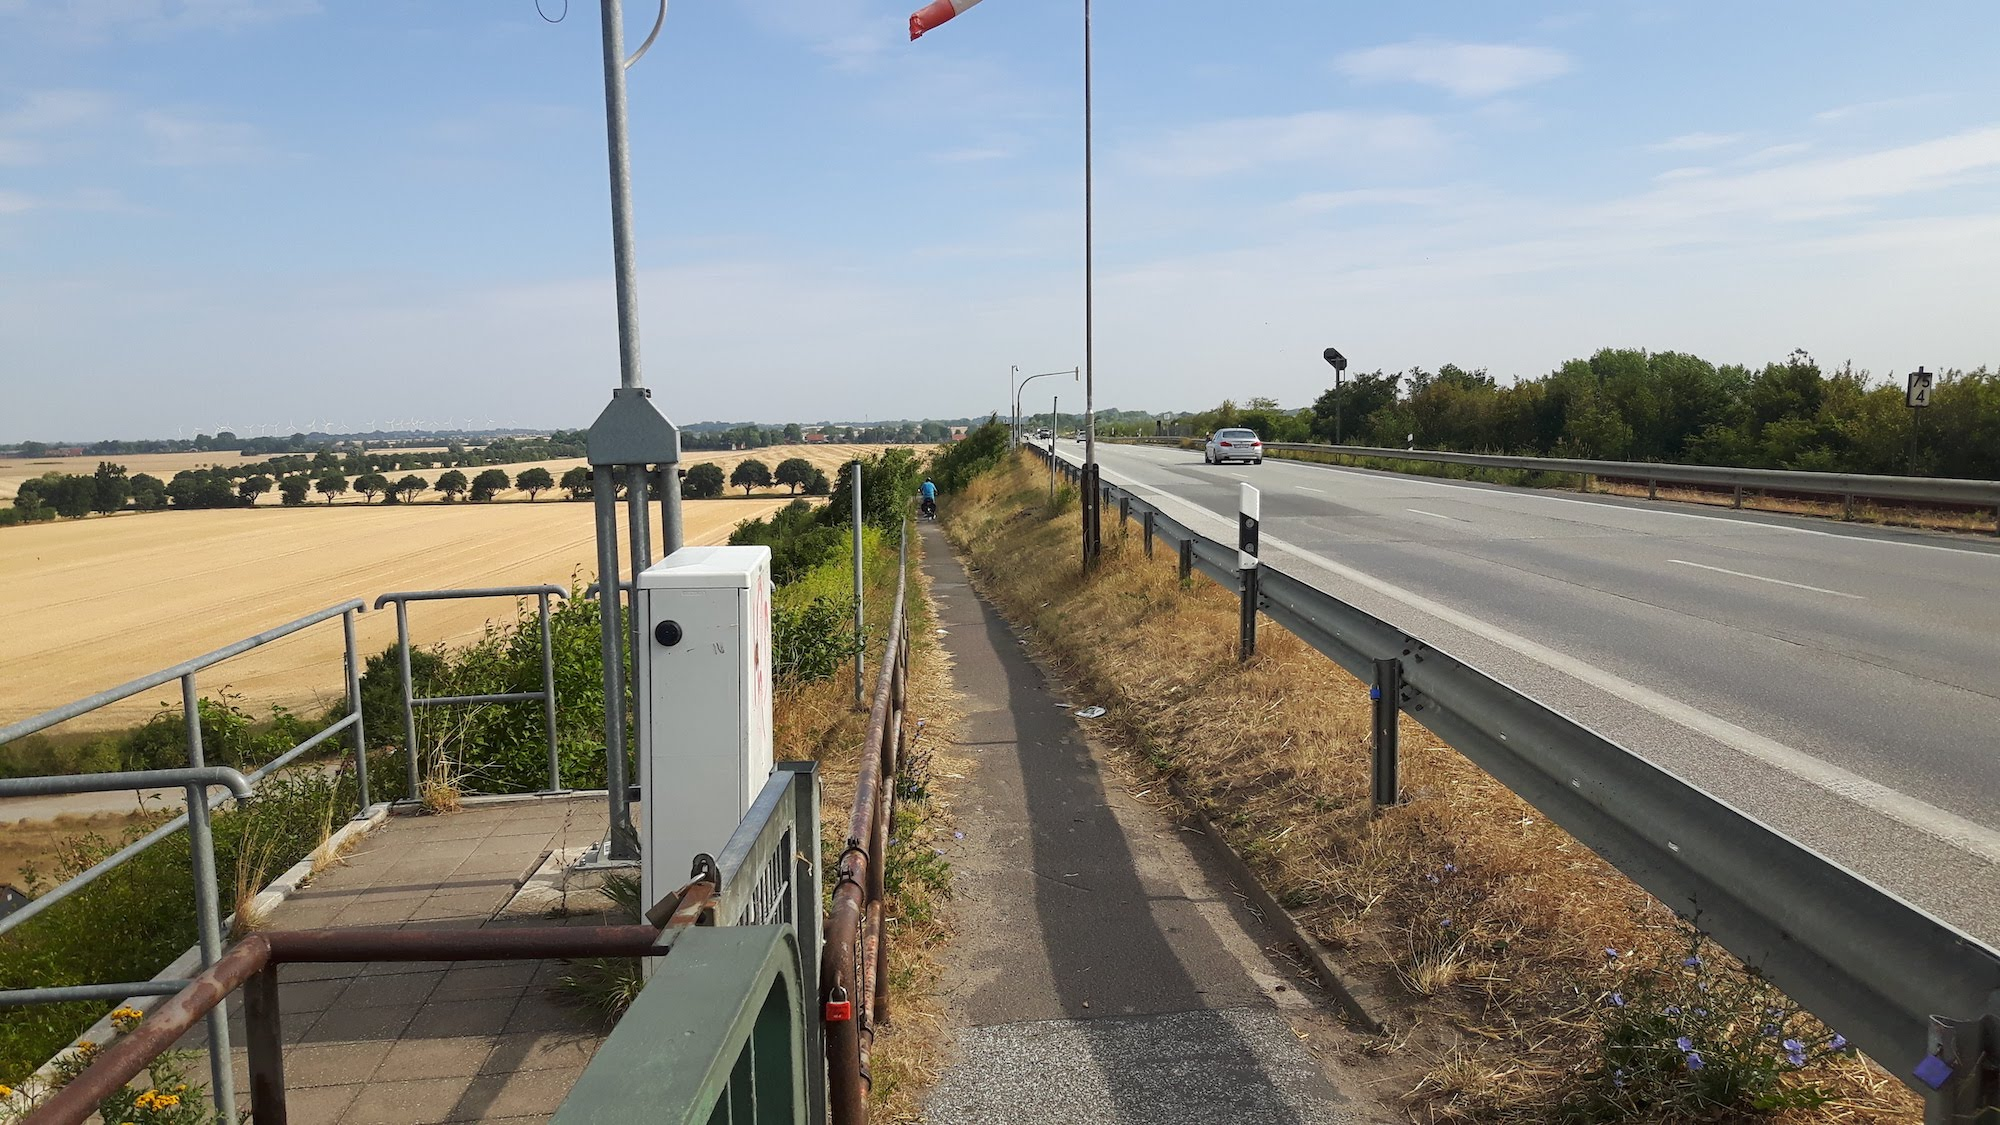 Cycle path for Bridge from Fehmarn Germany